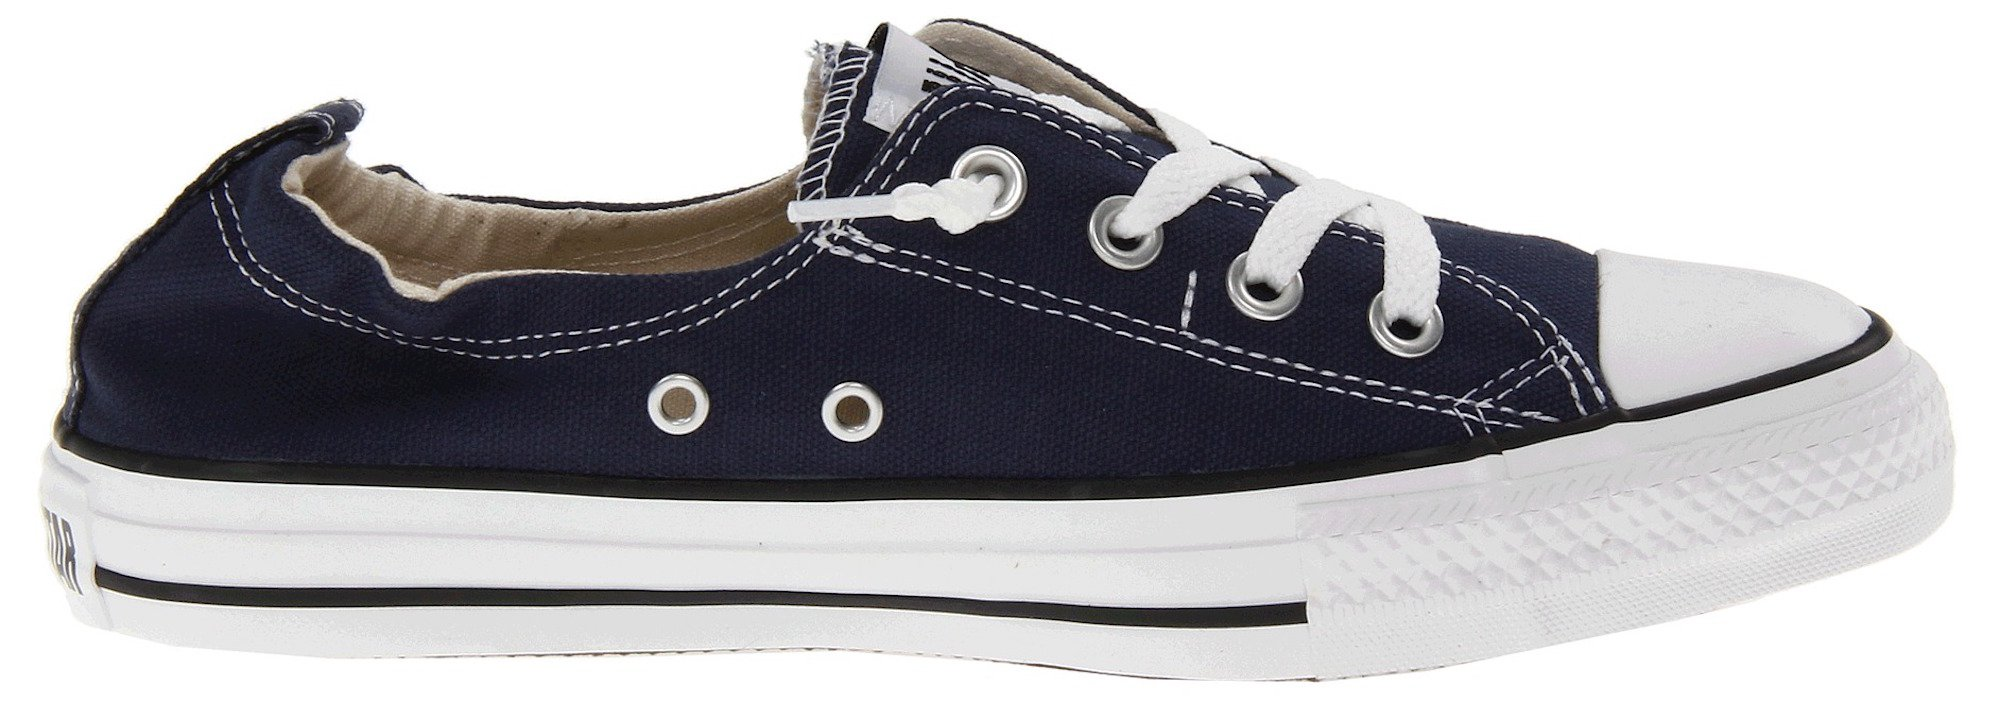 Converse Chuck Taylor All Star Shoreline Athletic Navy Lace-Up Sneaker - 7.5 B(M) US Women / 5.5 D(M) US Men